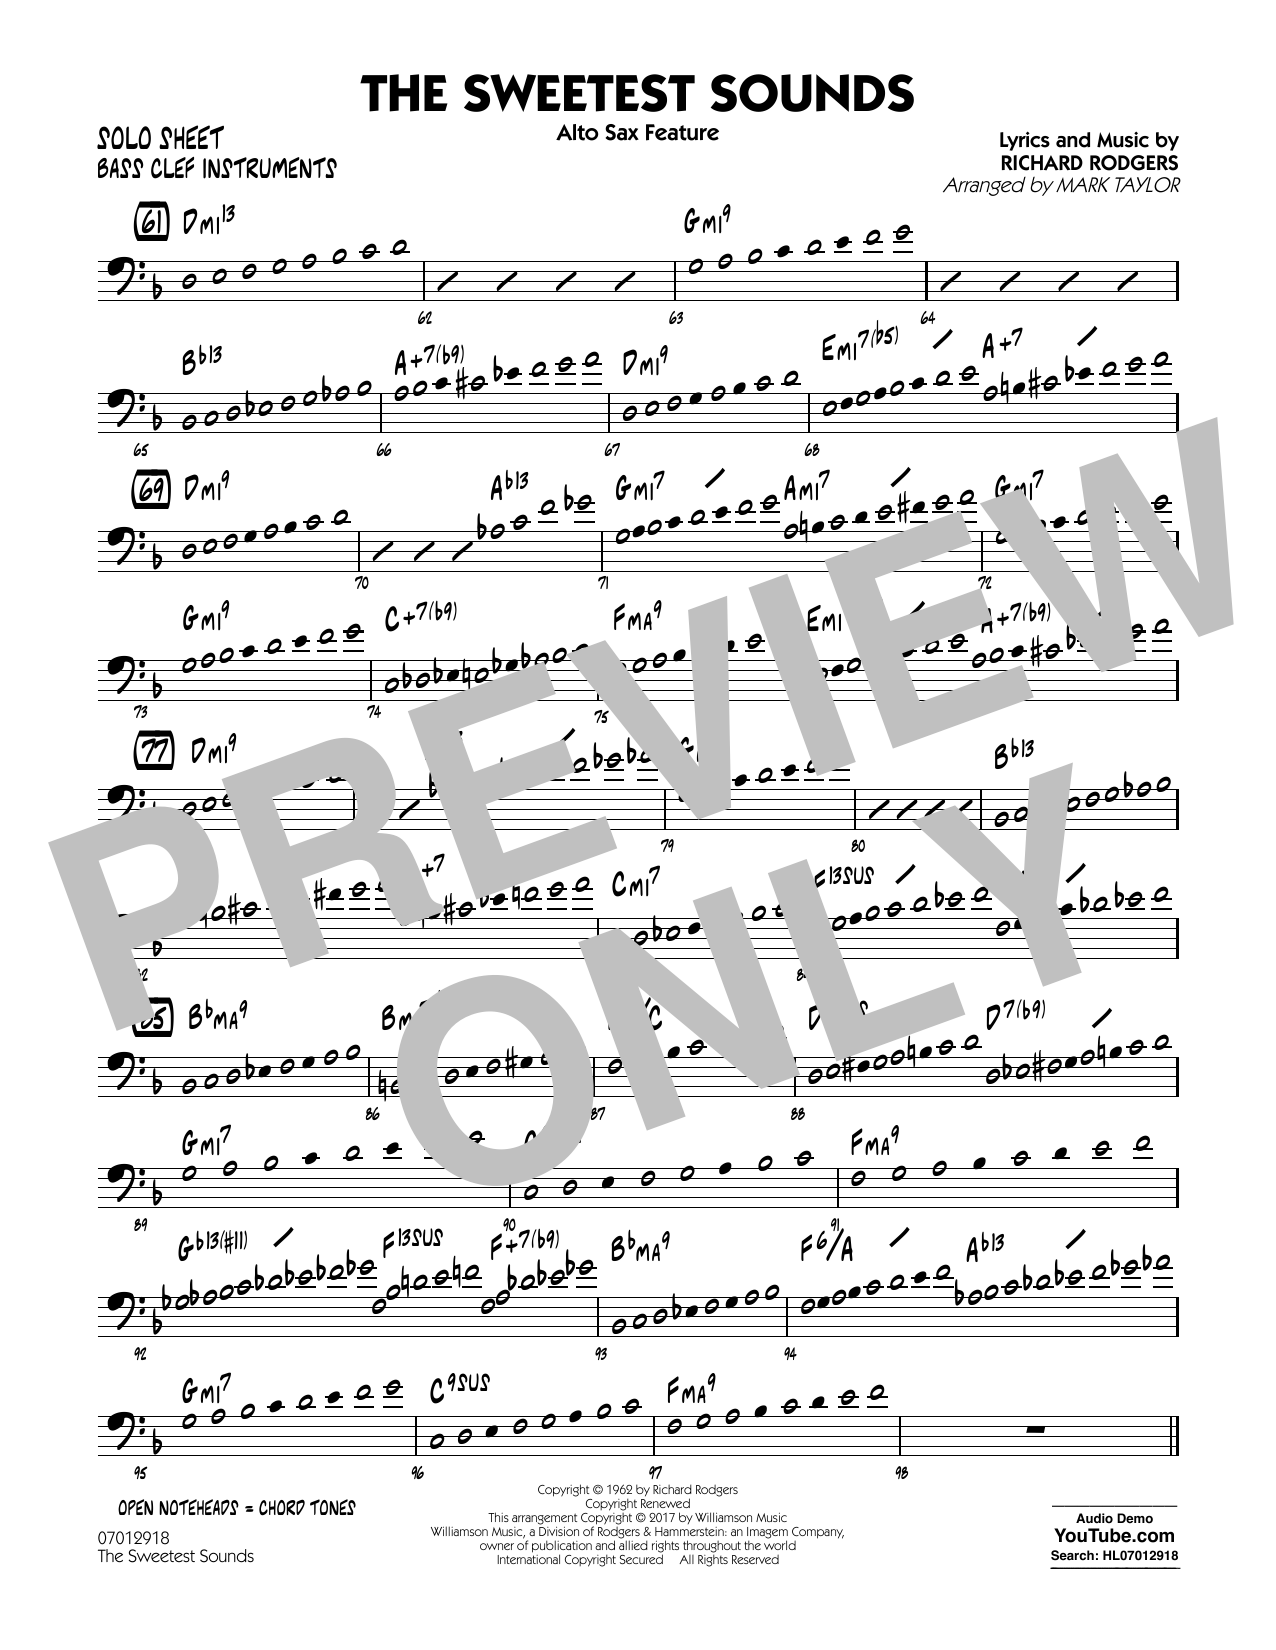 Mark Taylor The Sweetest Sounds (Alto Sax Feature) - Bass Clef Solo Sheet sheet music notes and chords. Download Printable PDF.